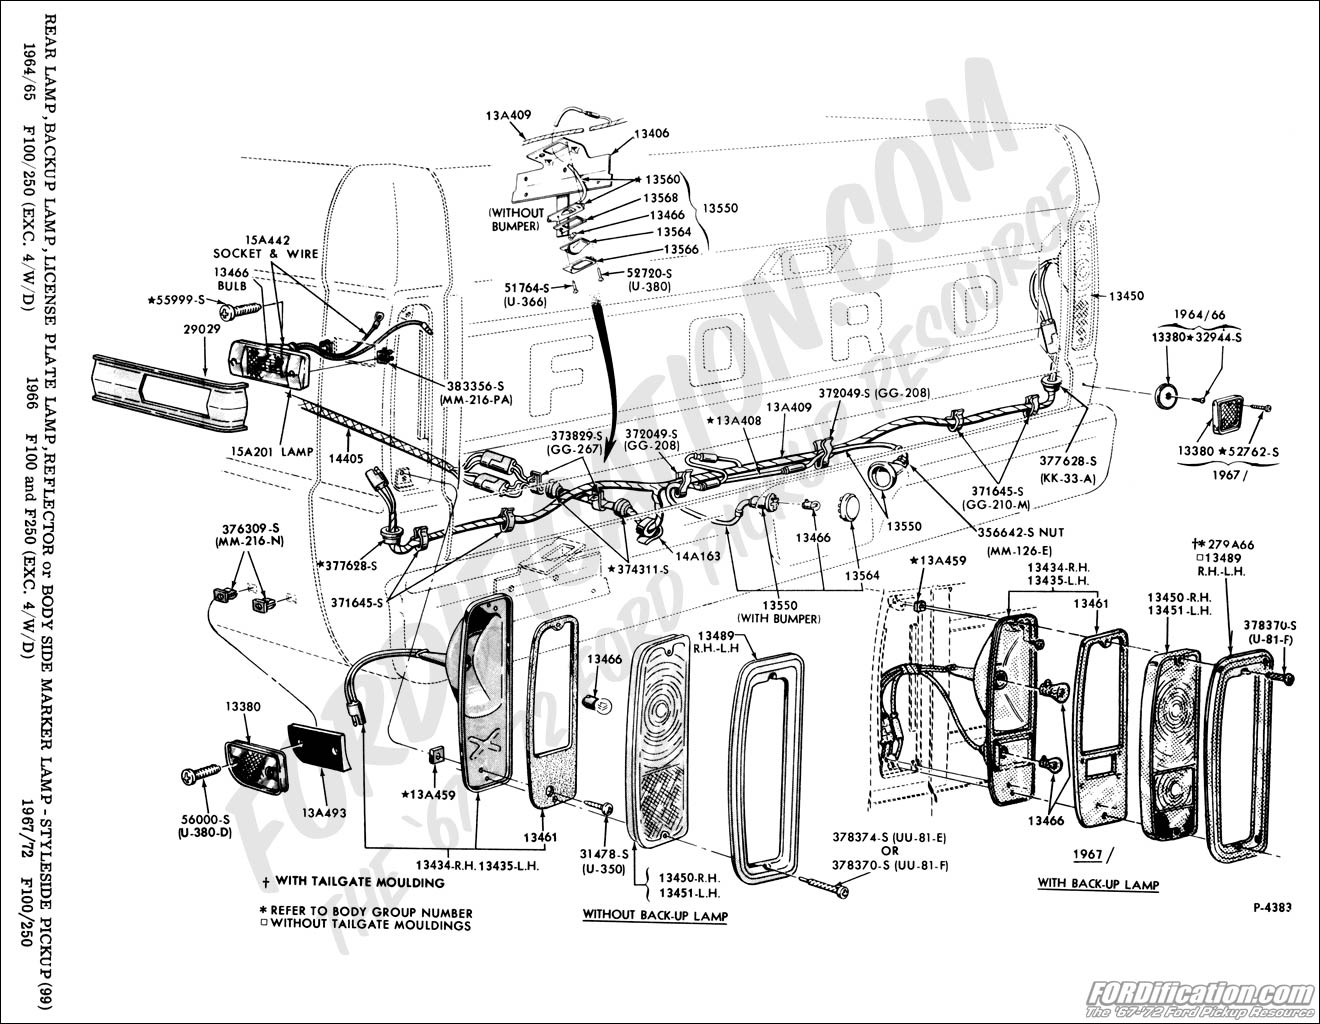 Showthread further 1996 Chevy Truck Steering Column Diagram additionally 84 Camaro Ignition Wiring Diagram also 71 Super Beetle Engine Diagram furthermore Toyota Tundra Parts. on 77 toyota pickup wiring diagram